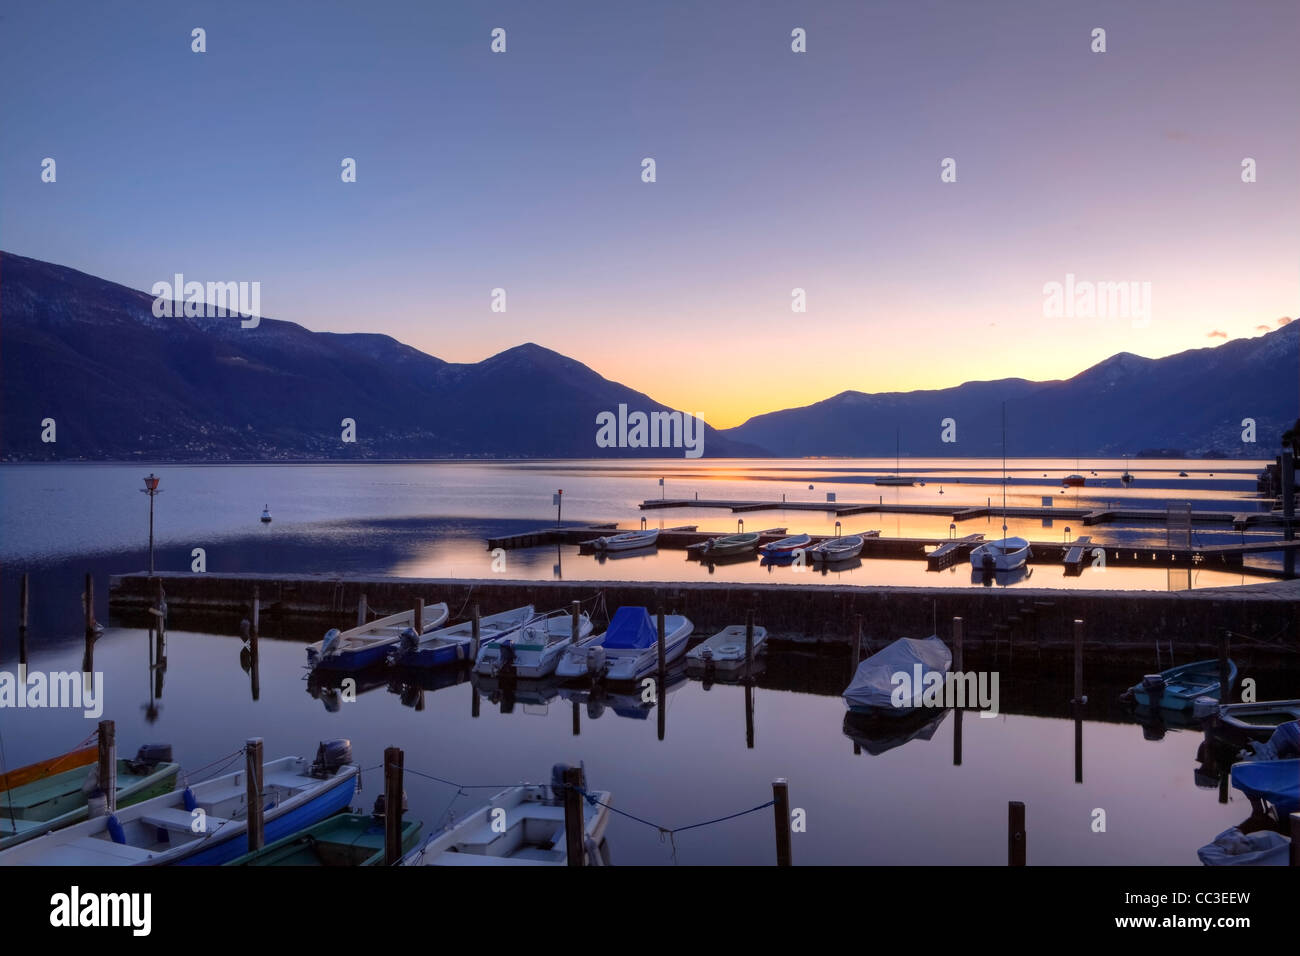 Bootsstege in Ascona, Ticino, Switzerland at sunset during the blue hour. - Stock Image